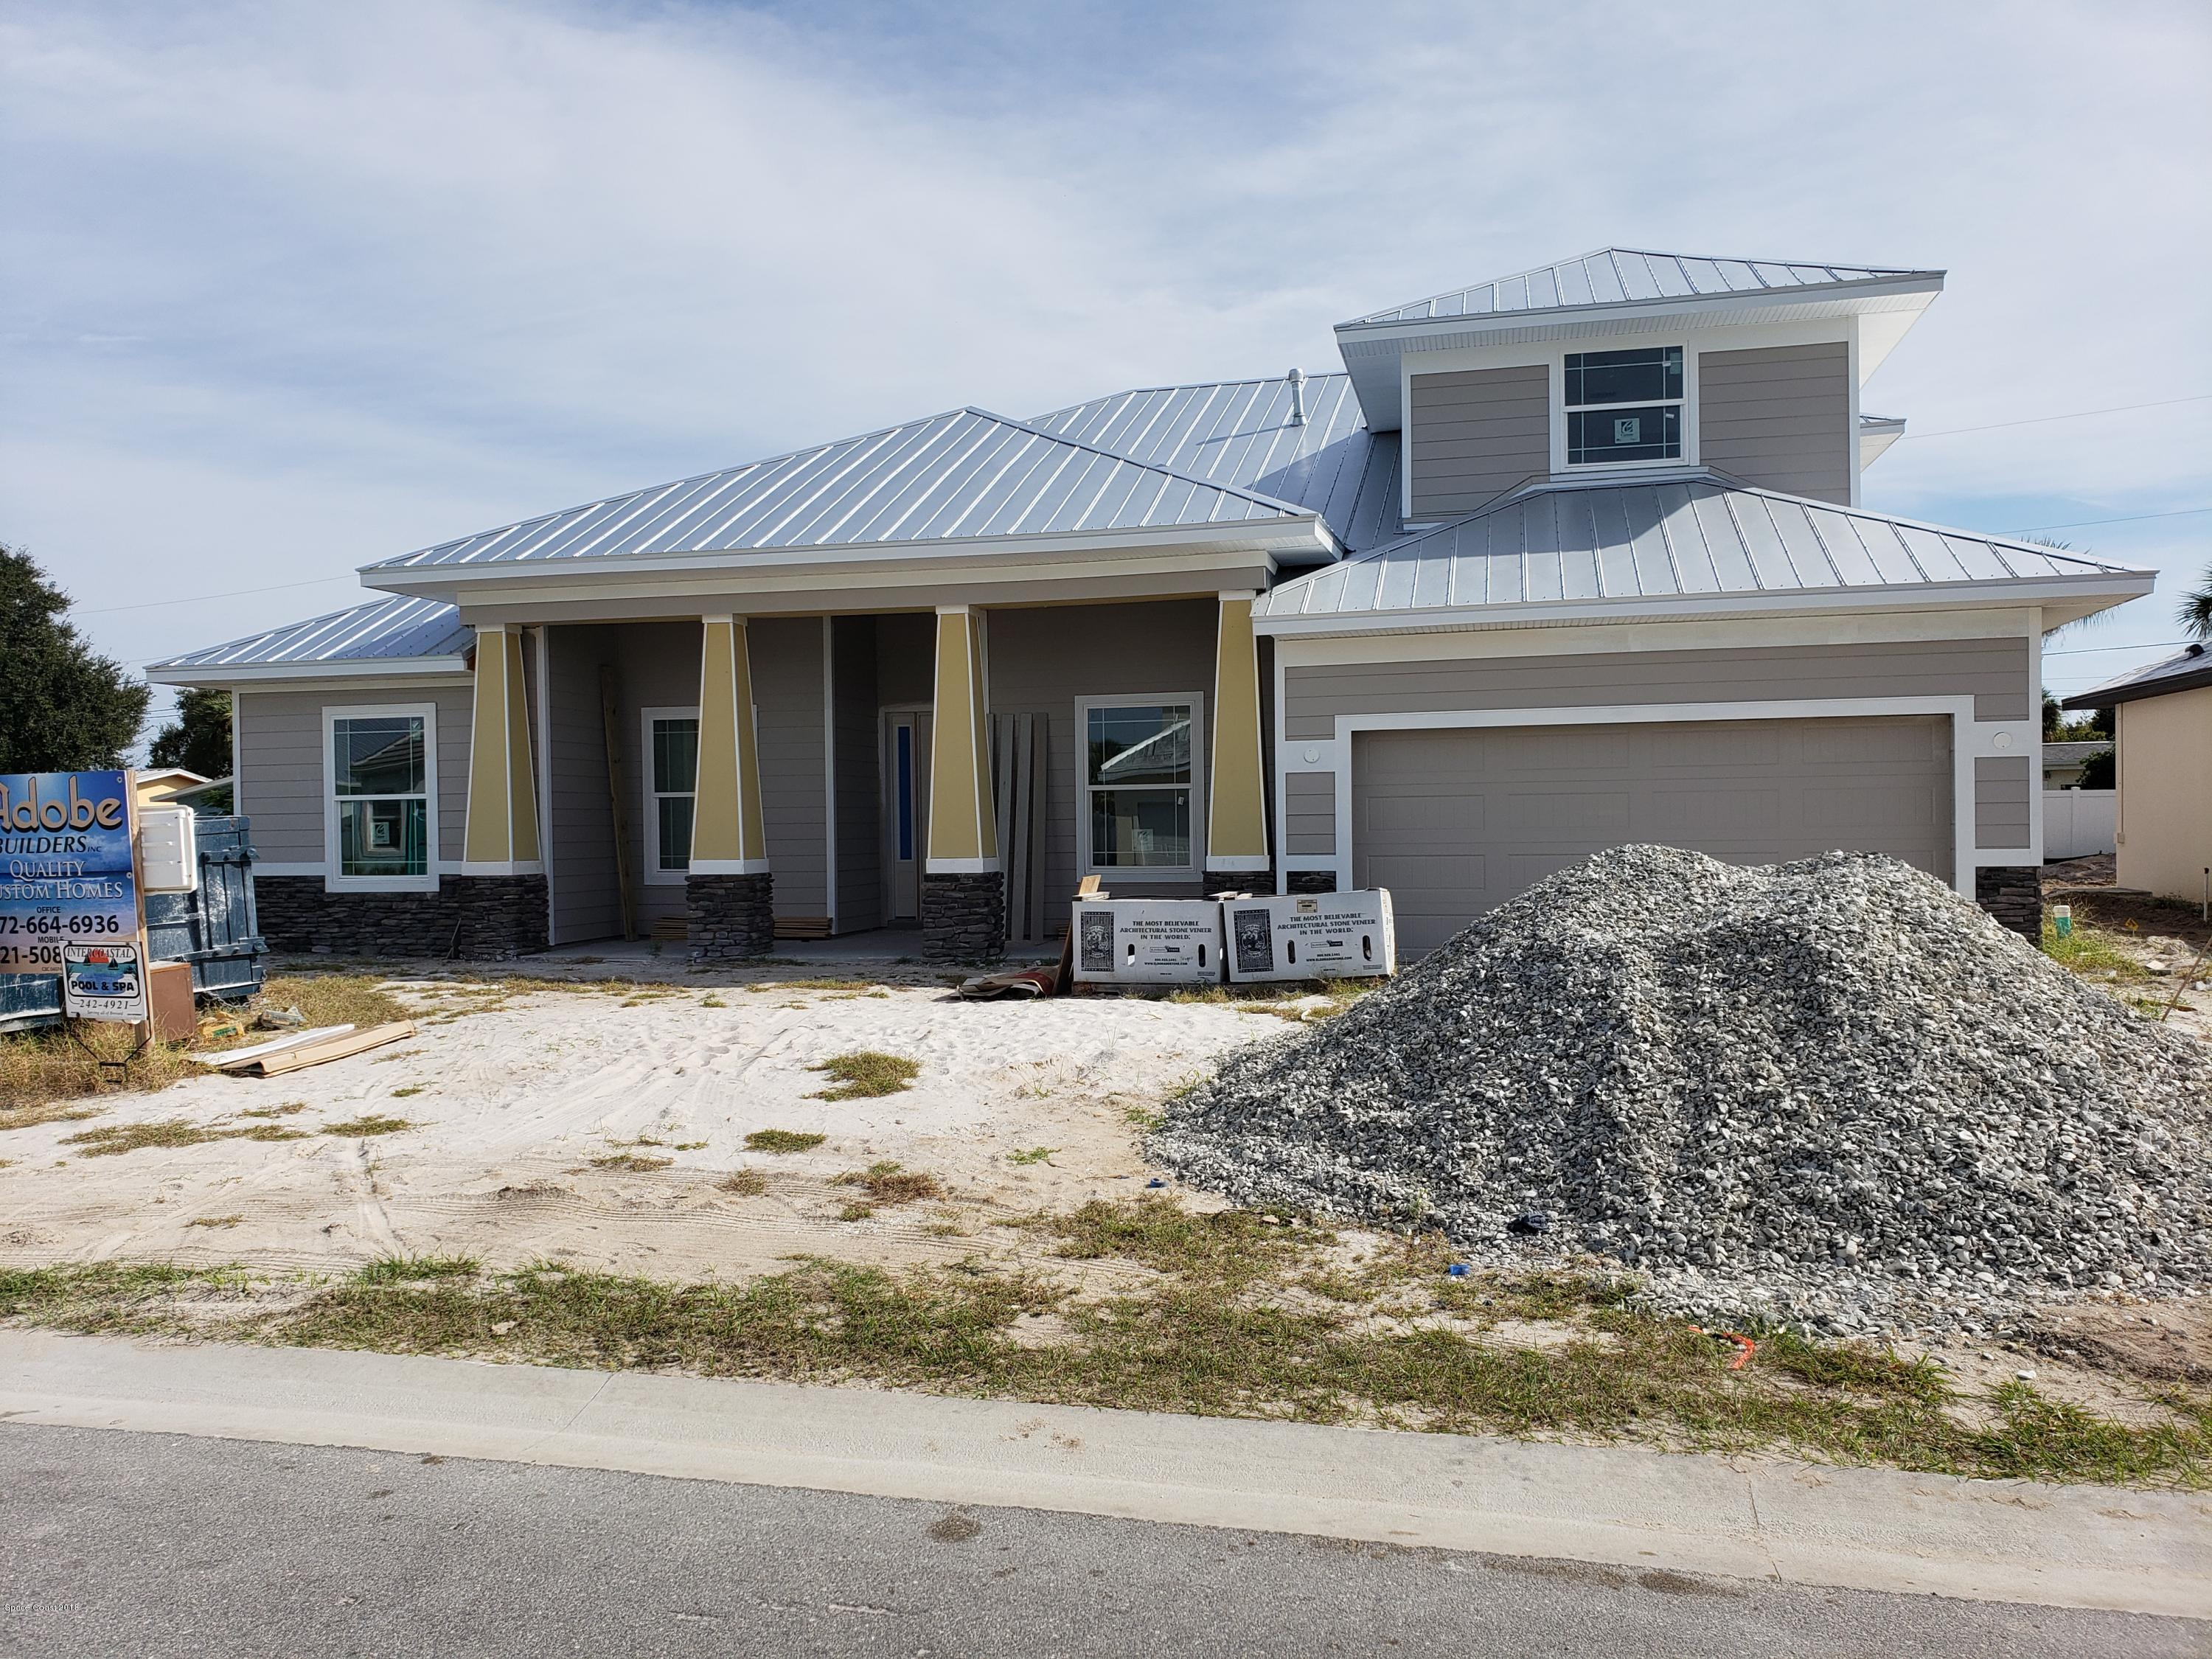 Single Family Home for Sale at 125 Enclave 125 Enclave Indian Harbour Beach, Florida 32937 United States